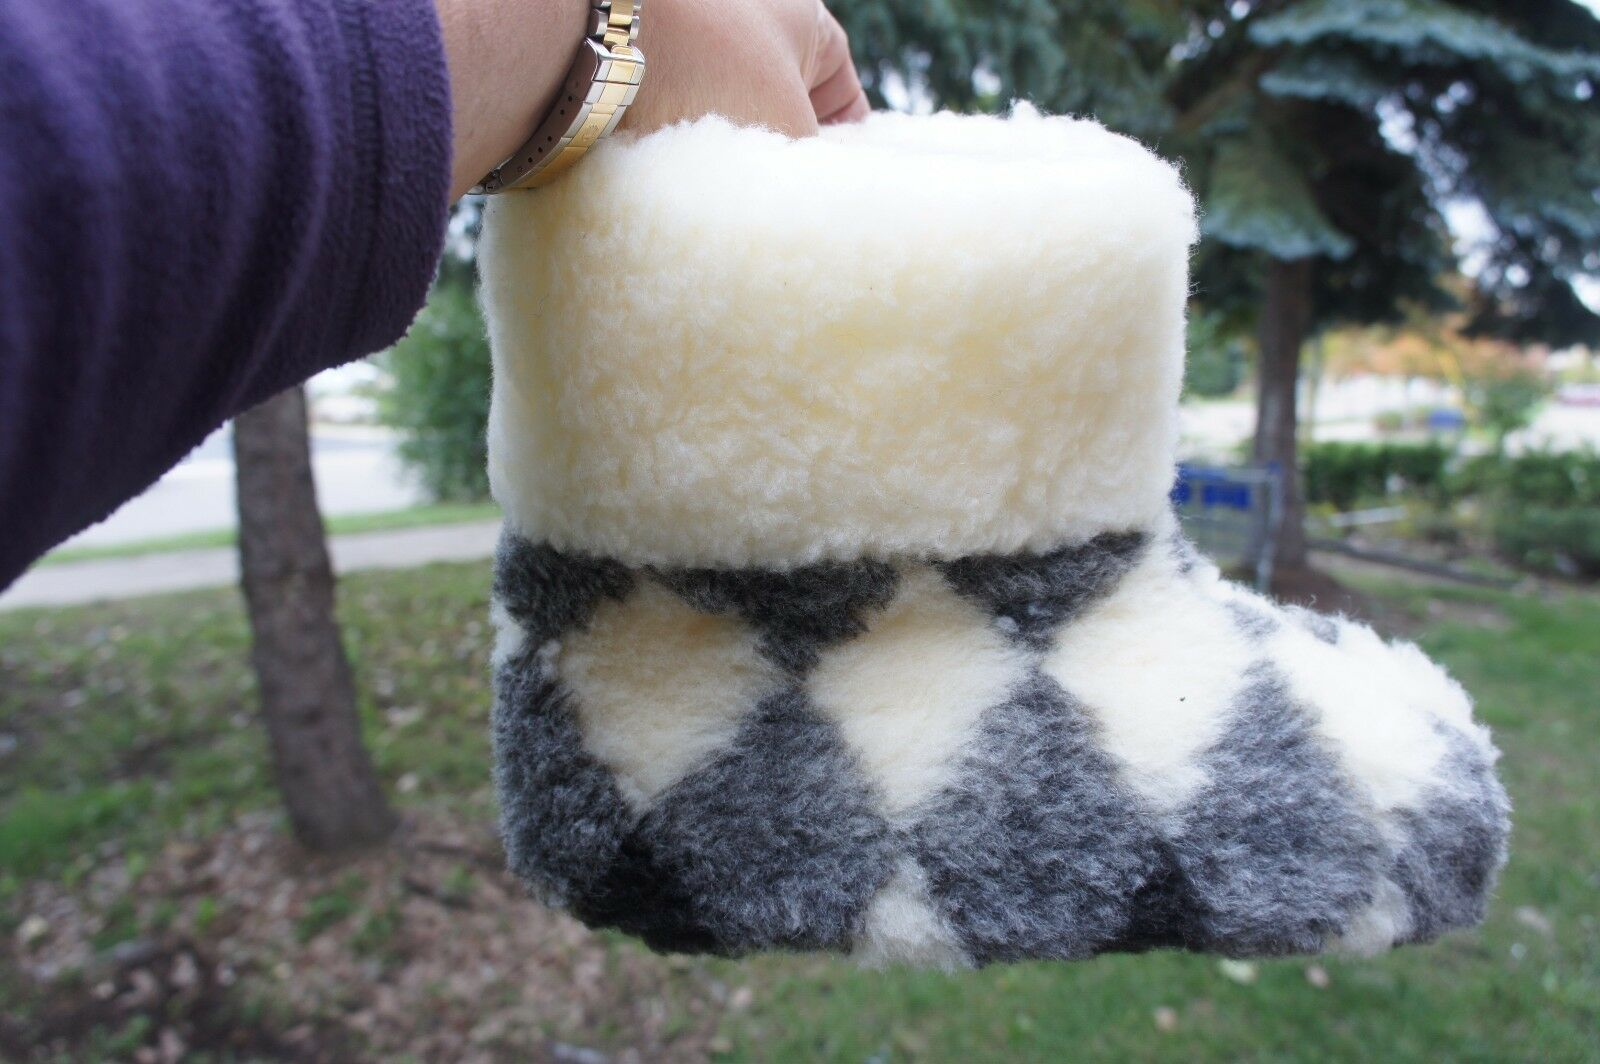 AUTHENTIC WOMEN WOOL SHEEPSKIN SLIPPERS. Made in Europe. No China.